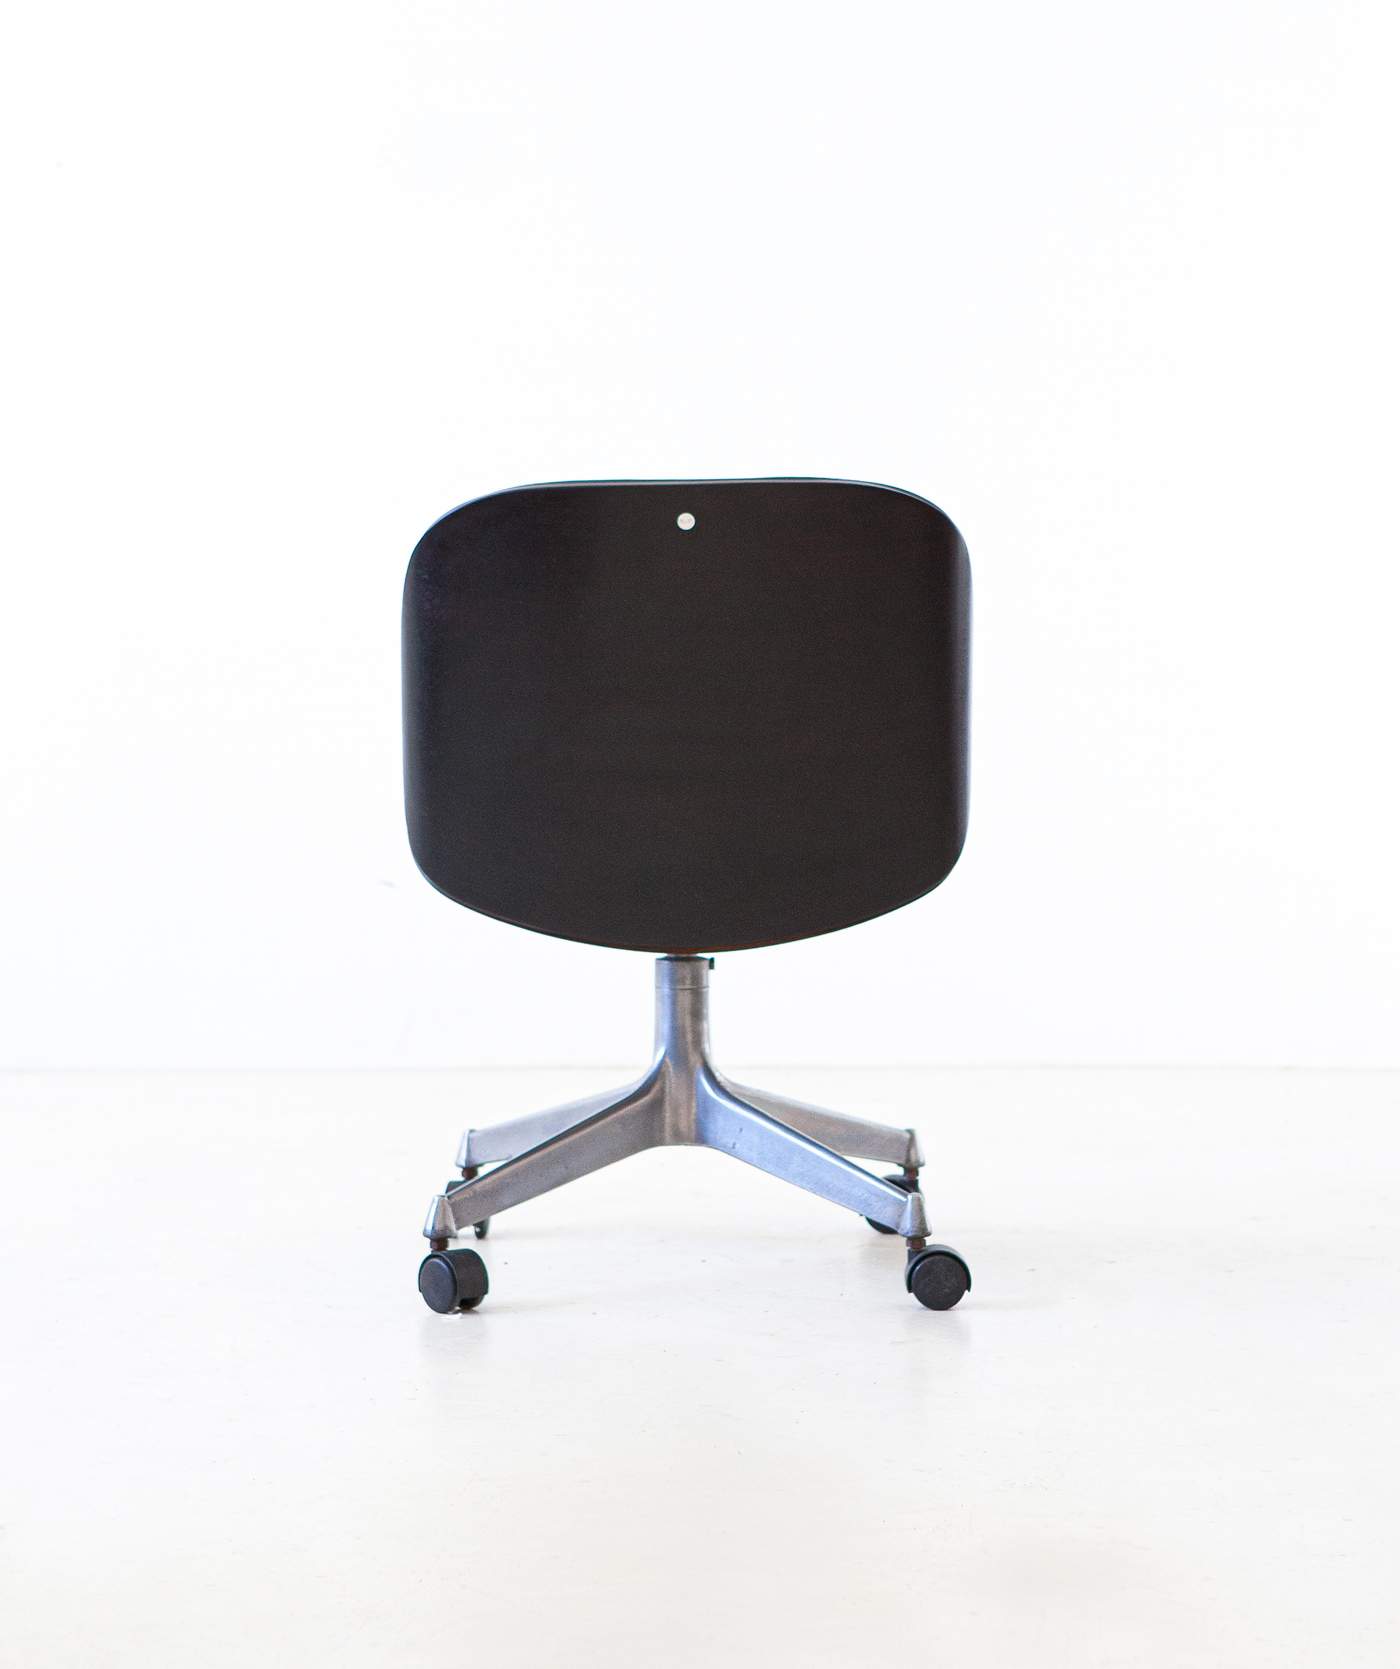 1950s-swivel-desk-chair-by-Ico-Parisi-for-M.i.M.-2-se331